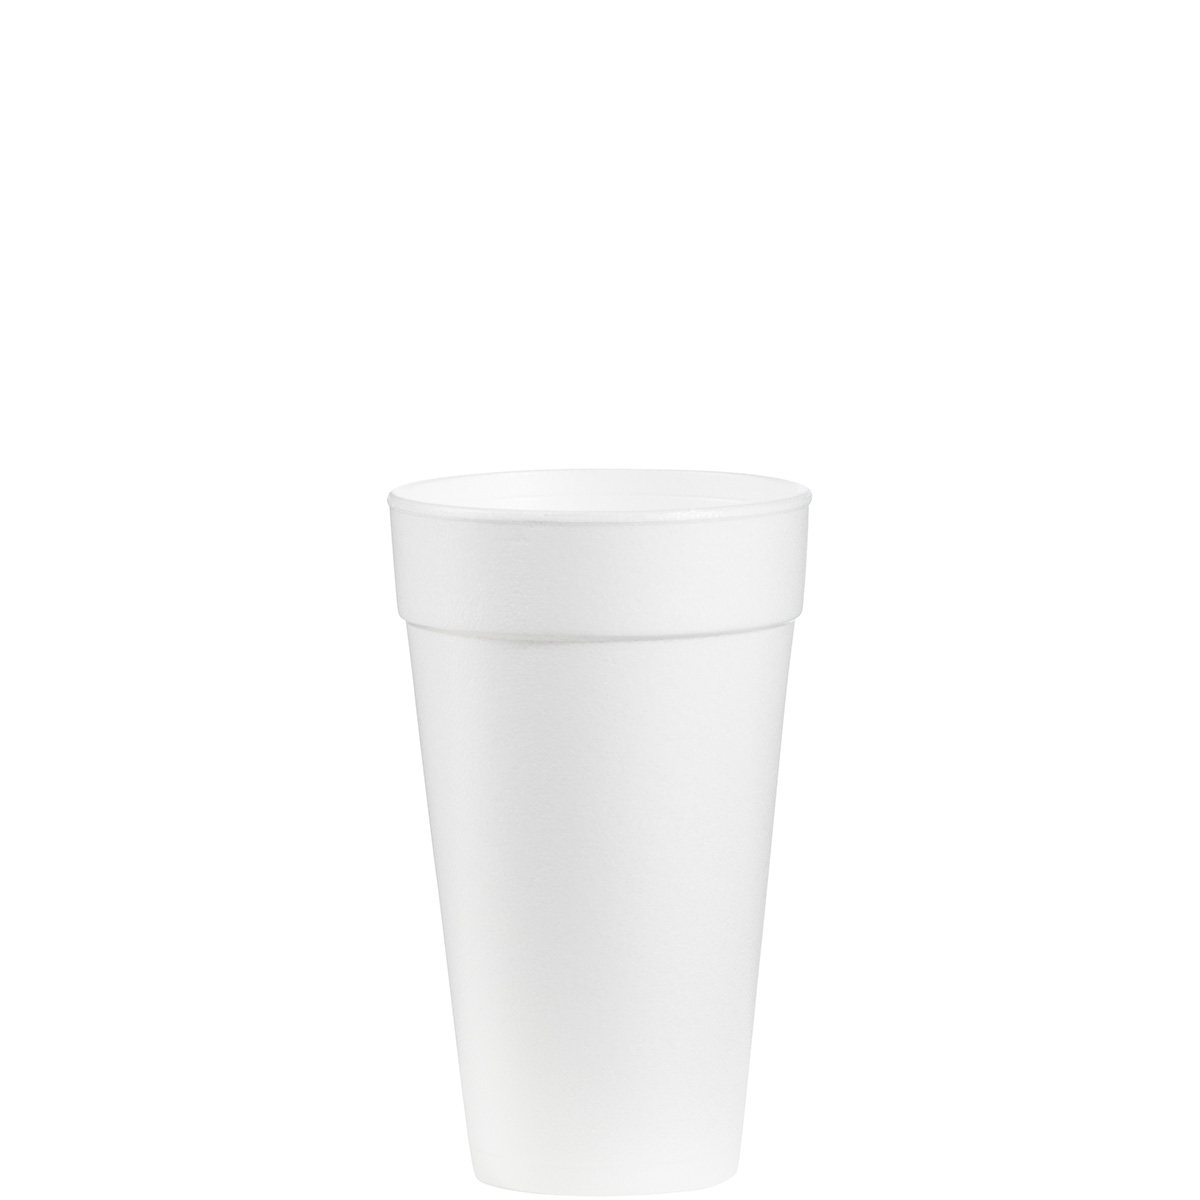 20J16 CUP STYRO 20oz Tall Cup 500/CS